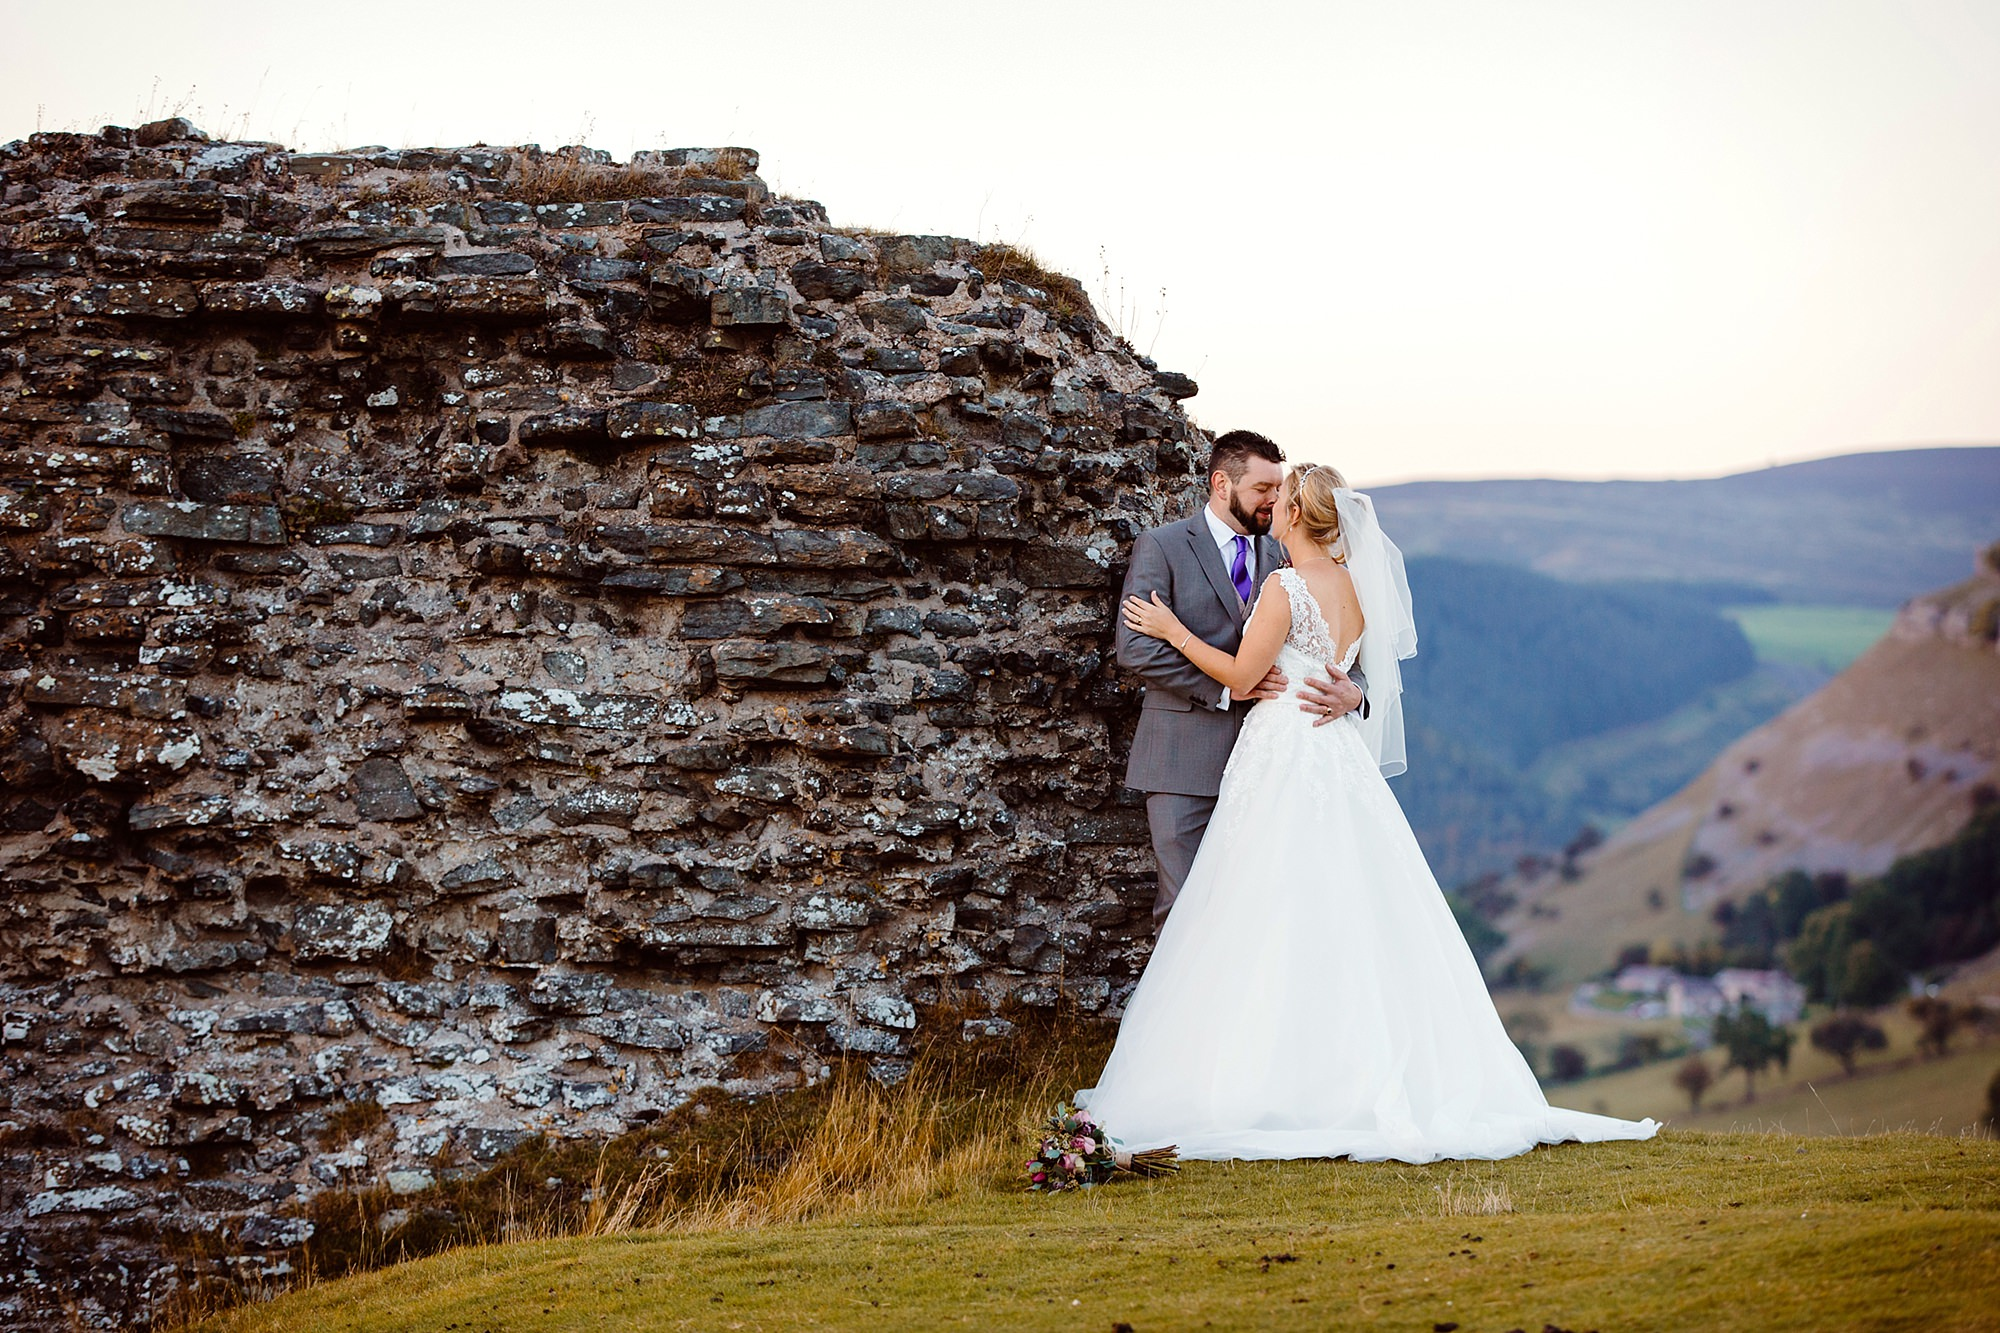 Castell dinas bran wedding photography portrait of bride and groom on top of a hill in llangollen